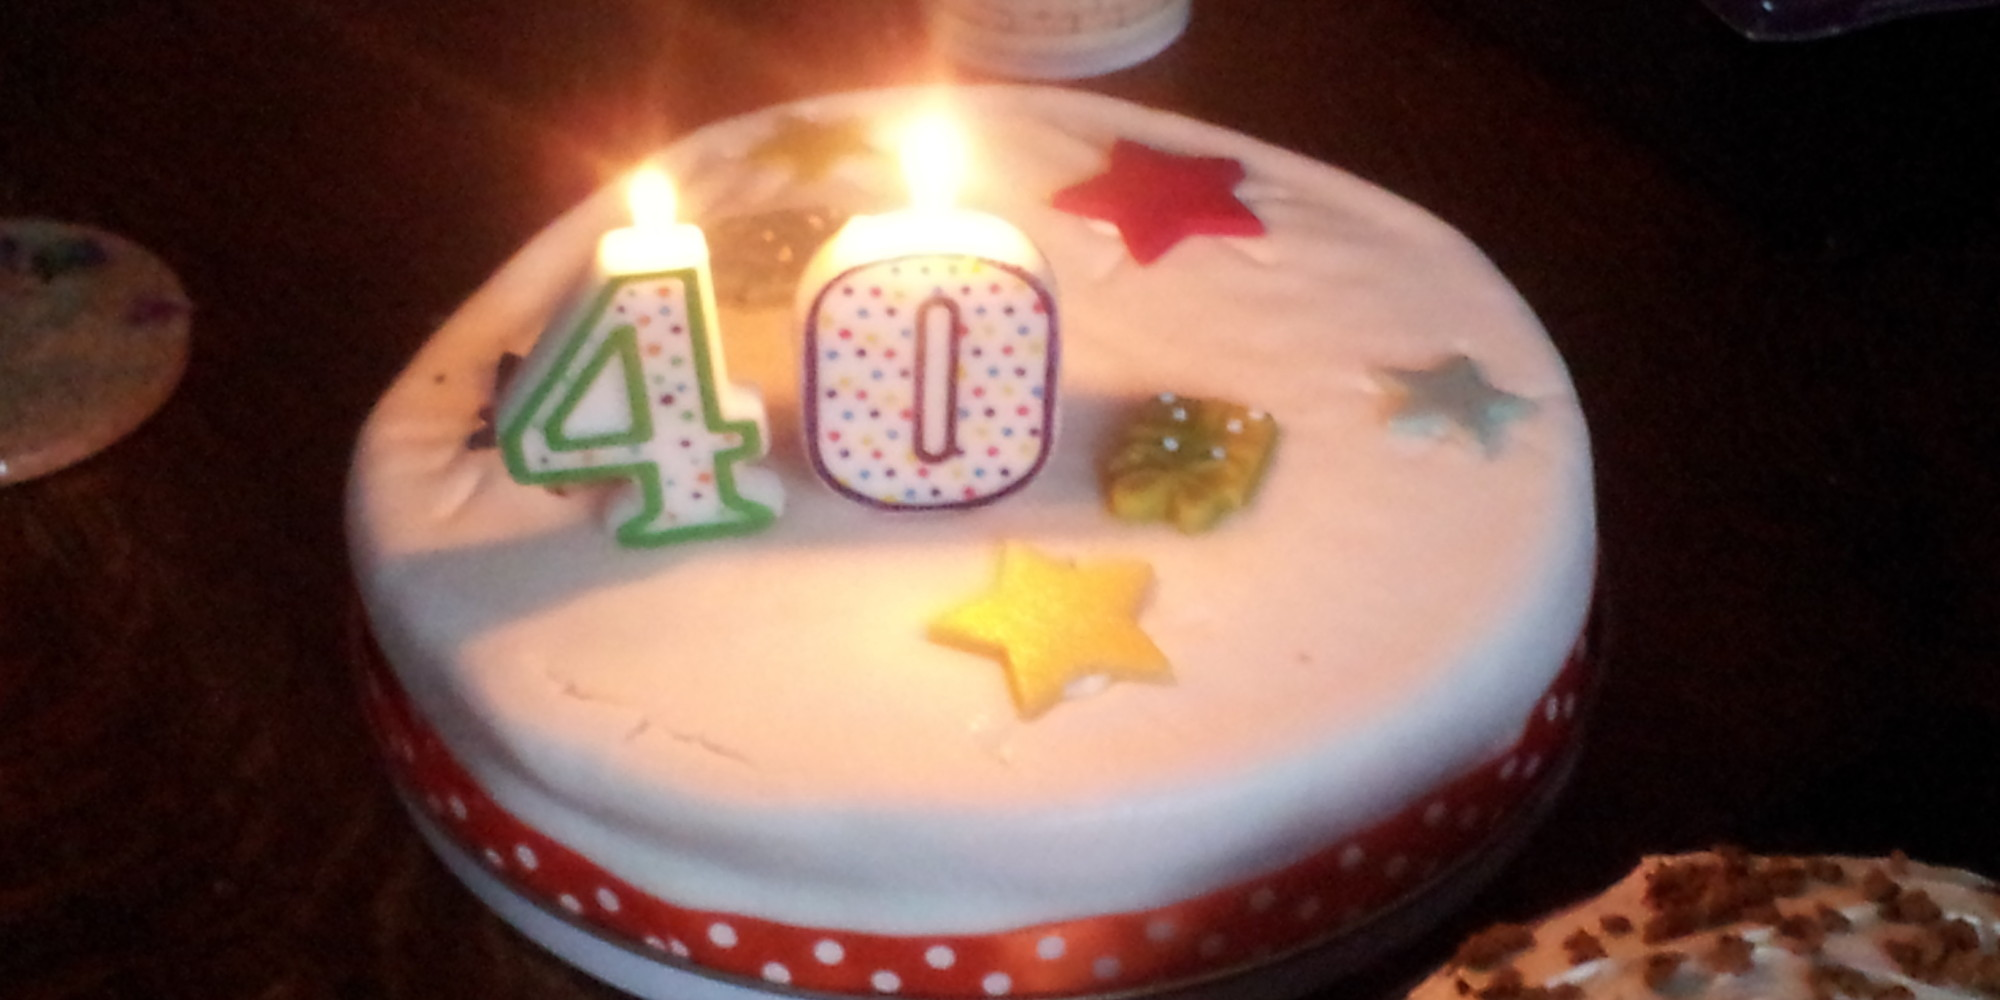 Birthday Cake Ideas For 40 Year Old Woman Drive Cheapusedmotorhome